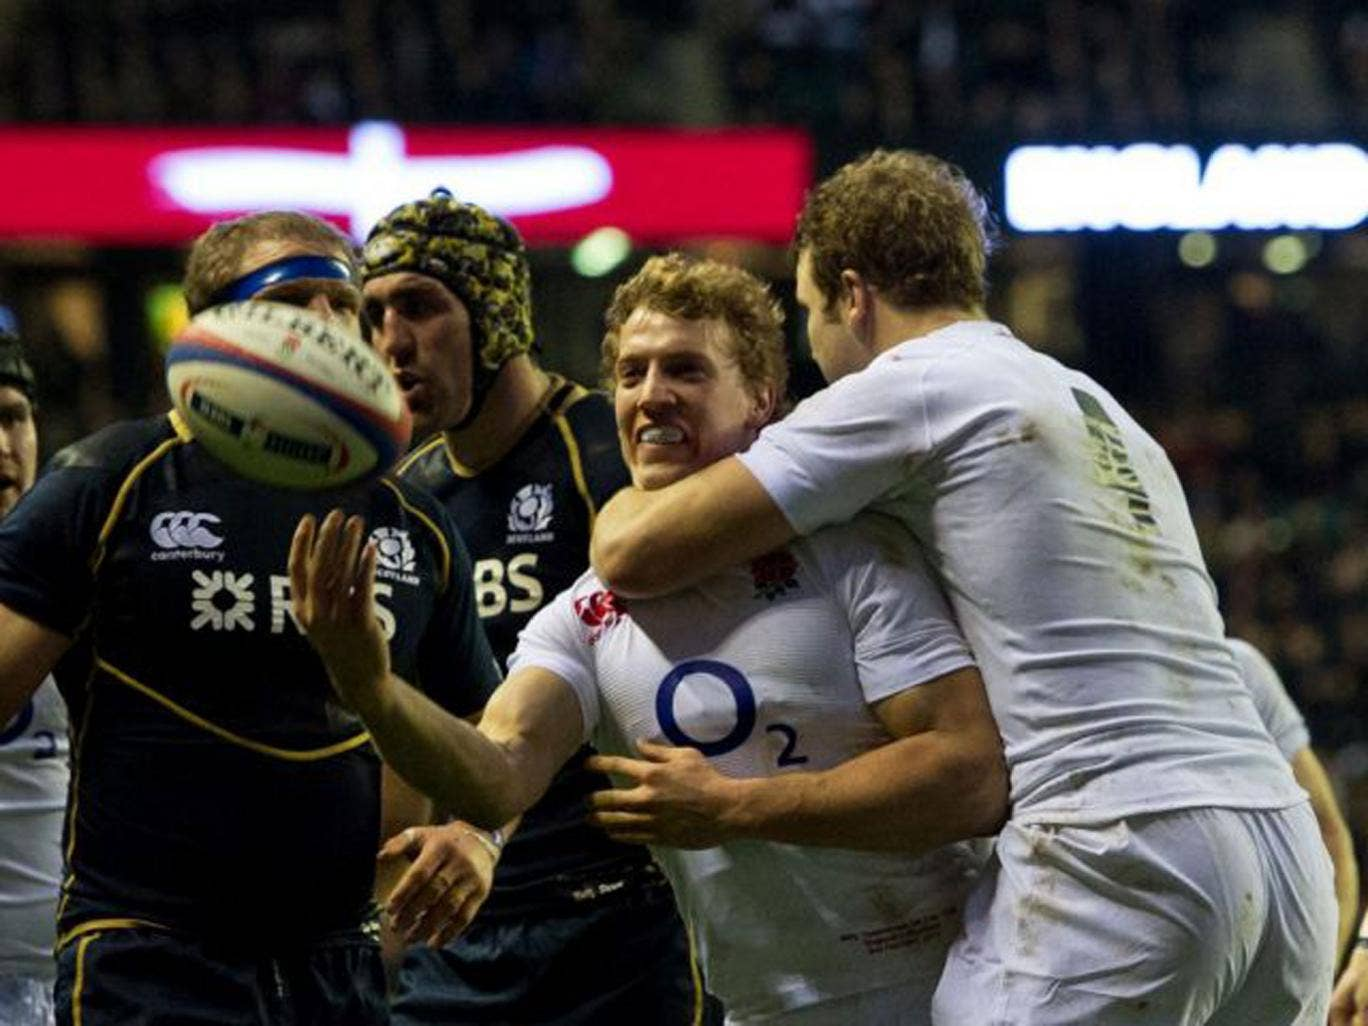 The thrilling Billy Twelvetrees can be a key indicator of England's progress